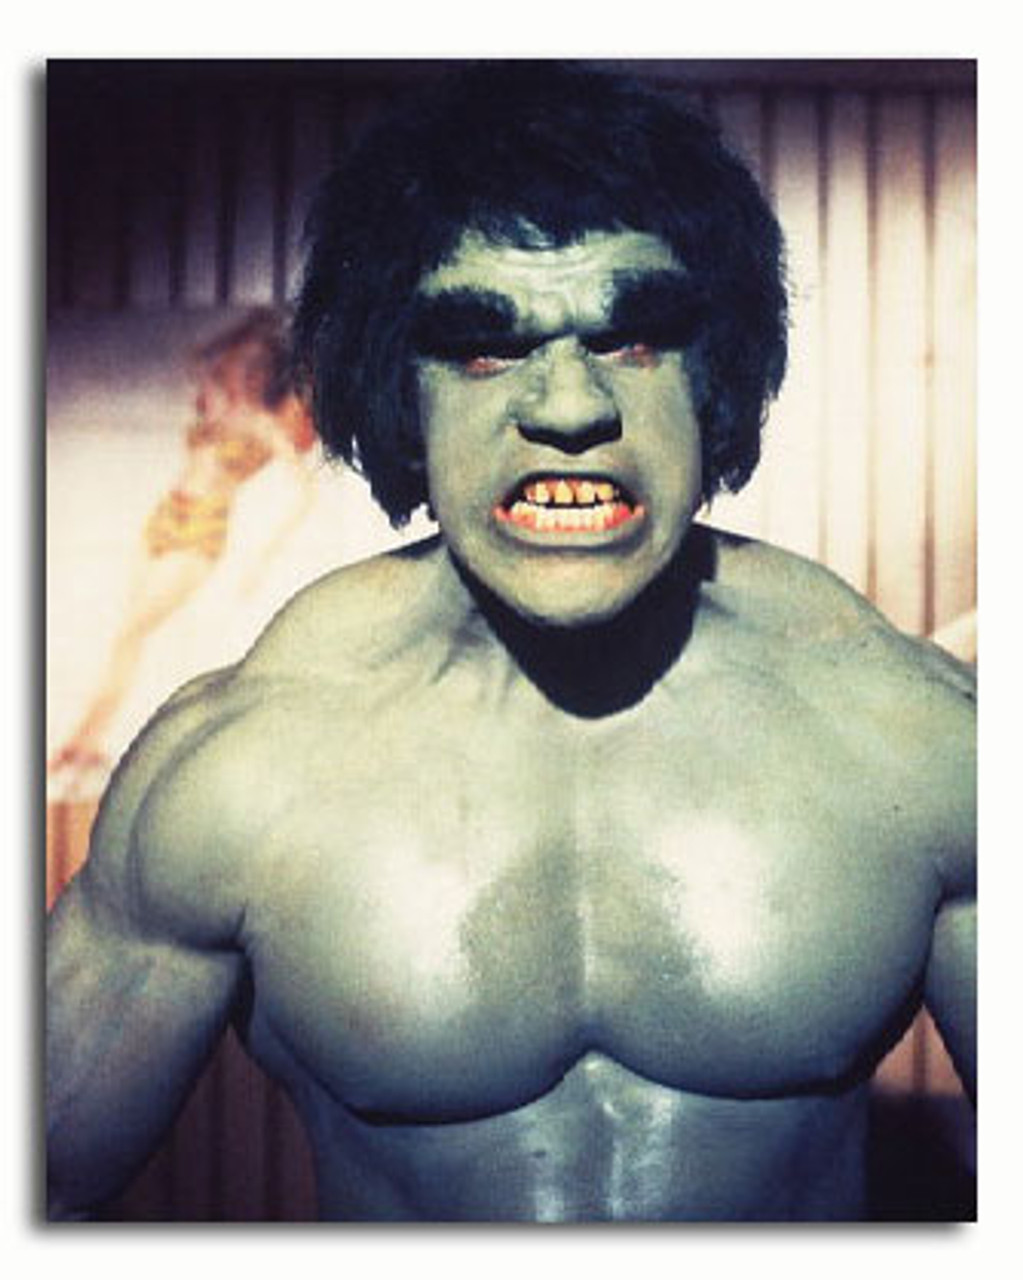 BLACK FRAMED THE INCREDIBLE HULK GLOSSY PRINTED PICTURE 465mm x 365mm